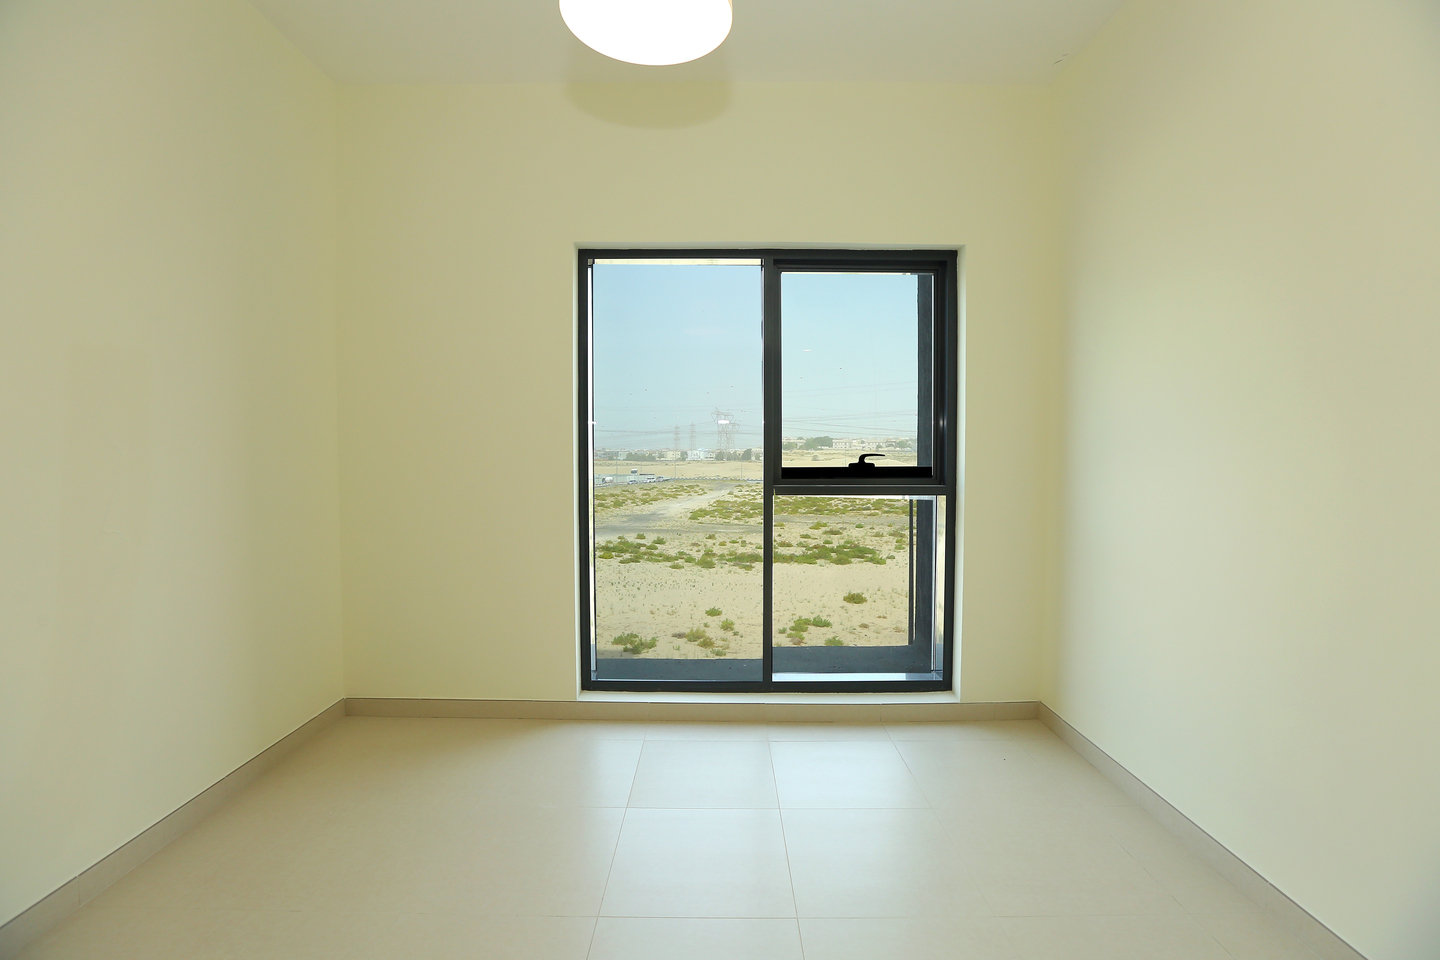 wasl nad tower window view